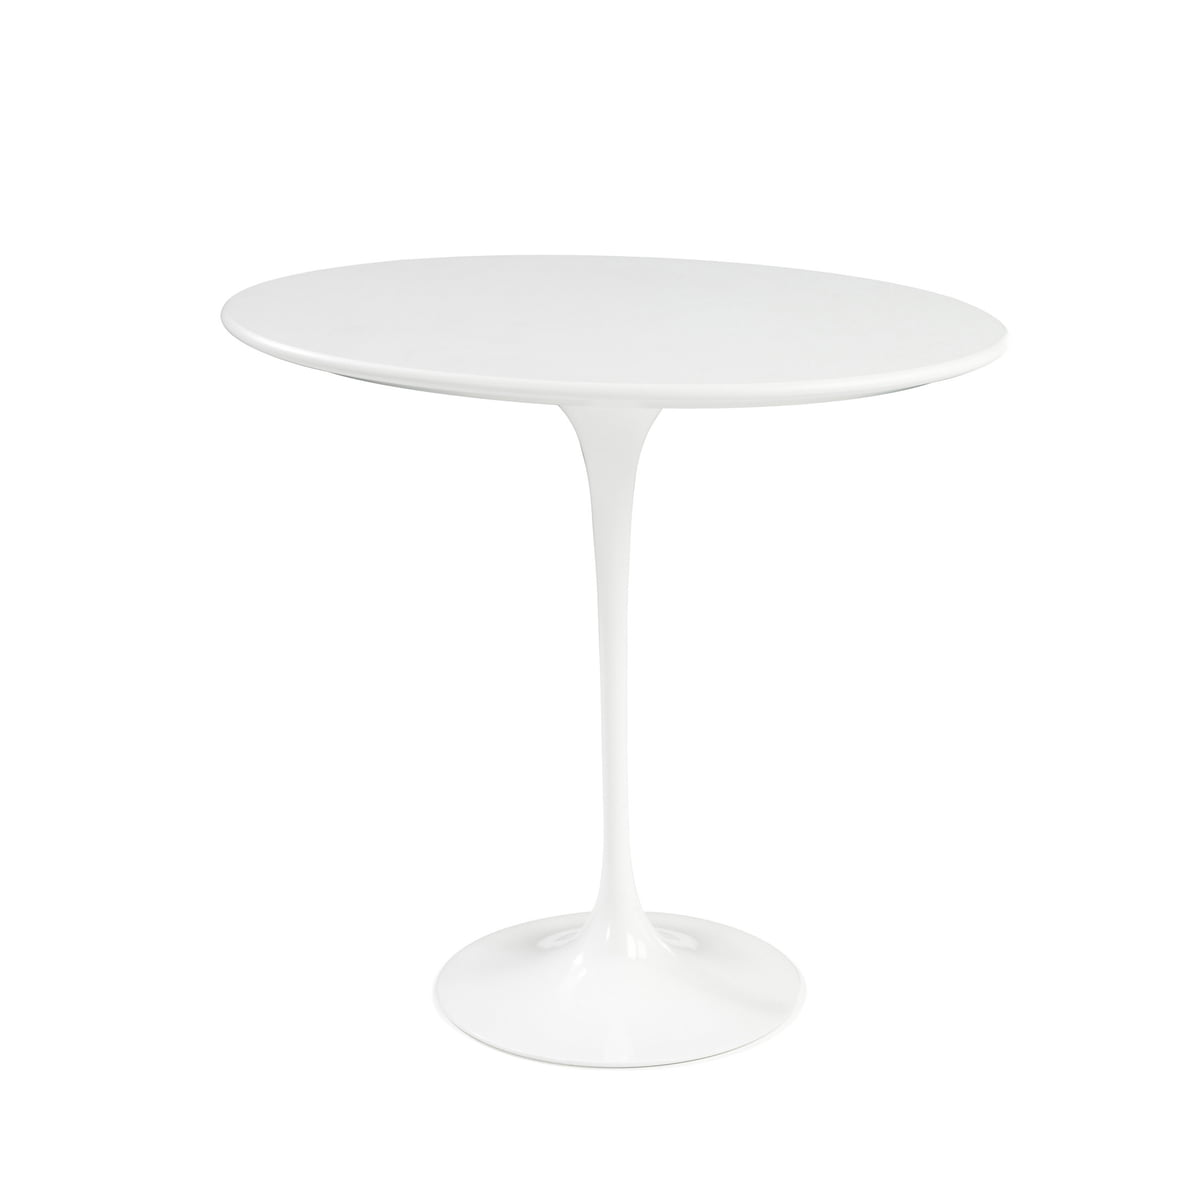 Knoll   Saarinen Tulip Side Table Round   White / Laminate White